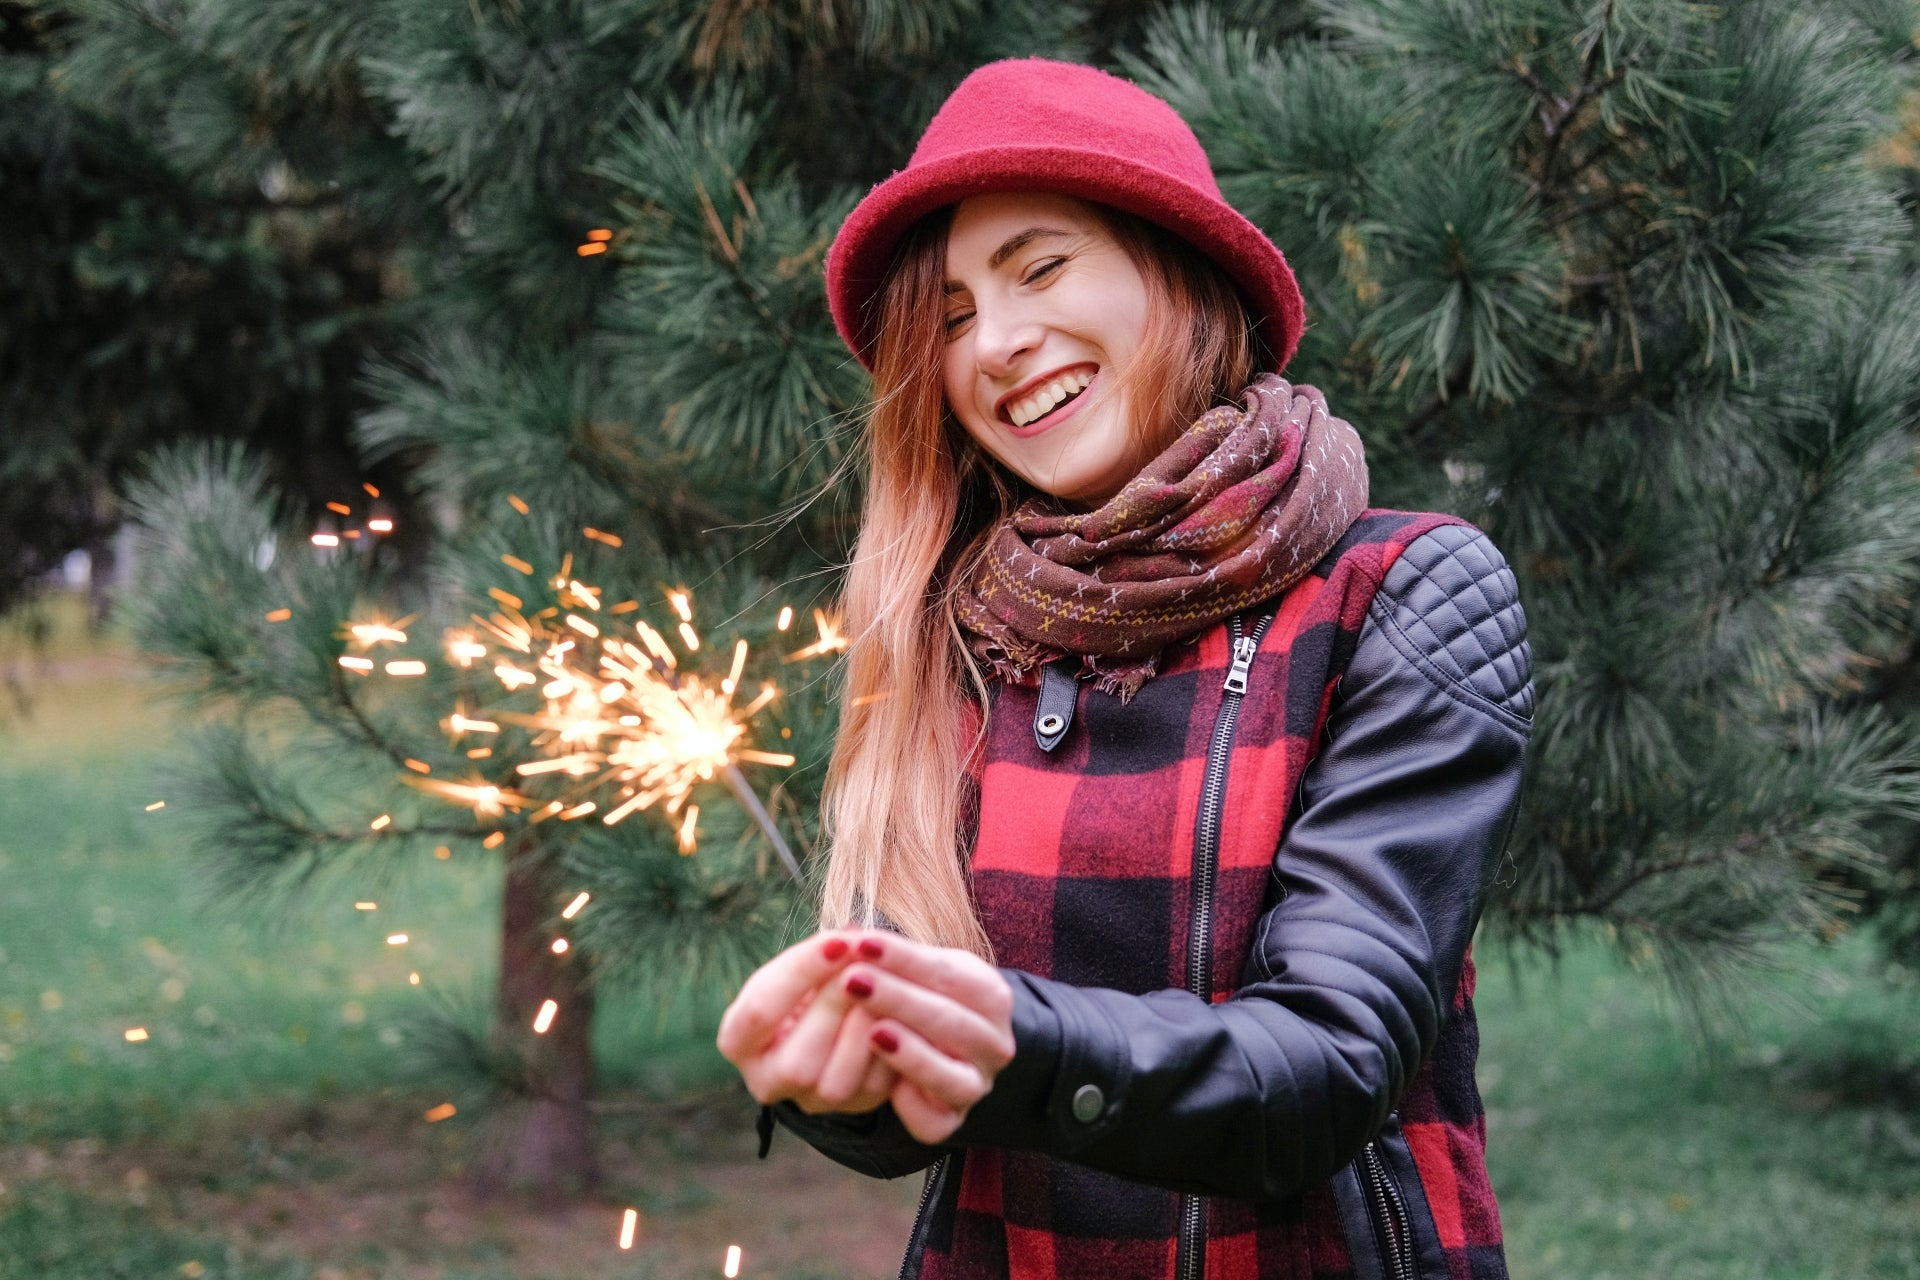 A young woman holds a sparkler and smiles because she paid off her holiday debt.